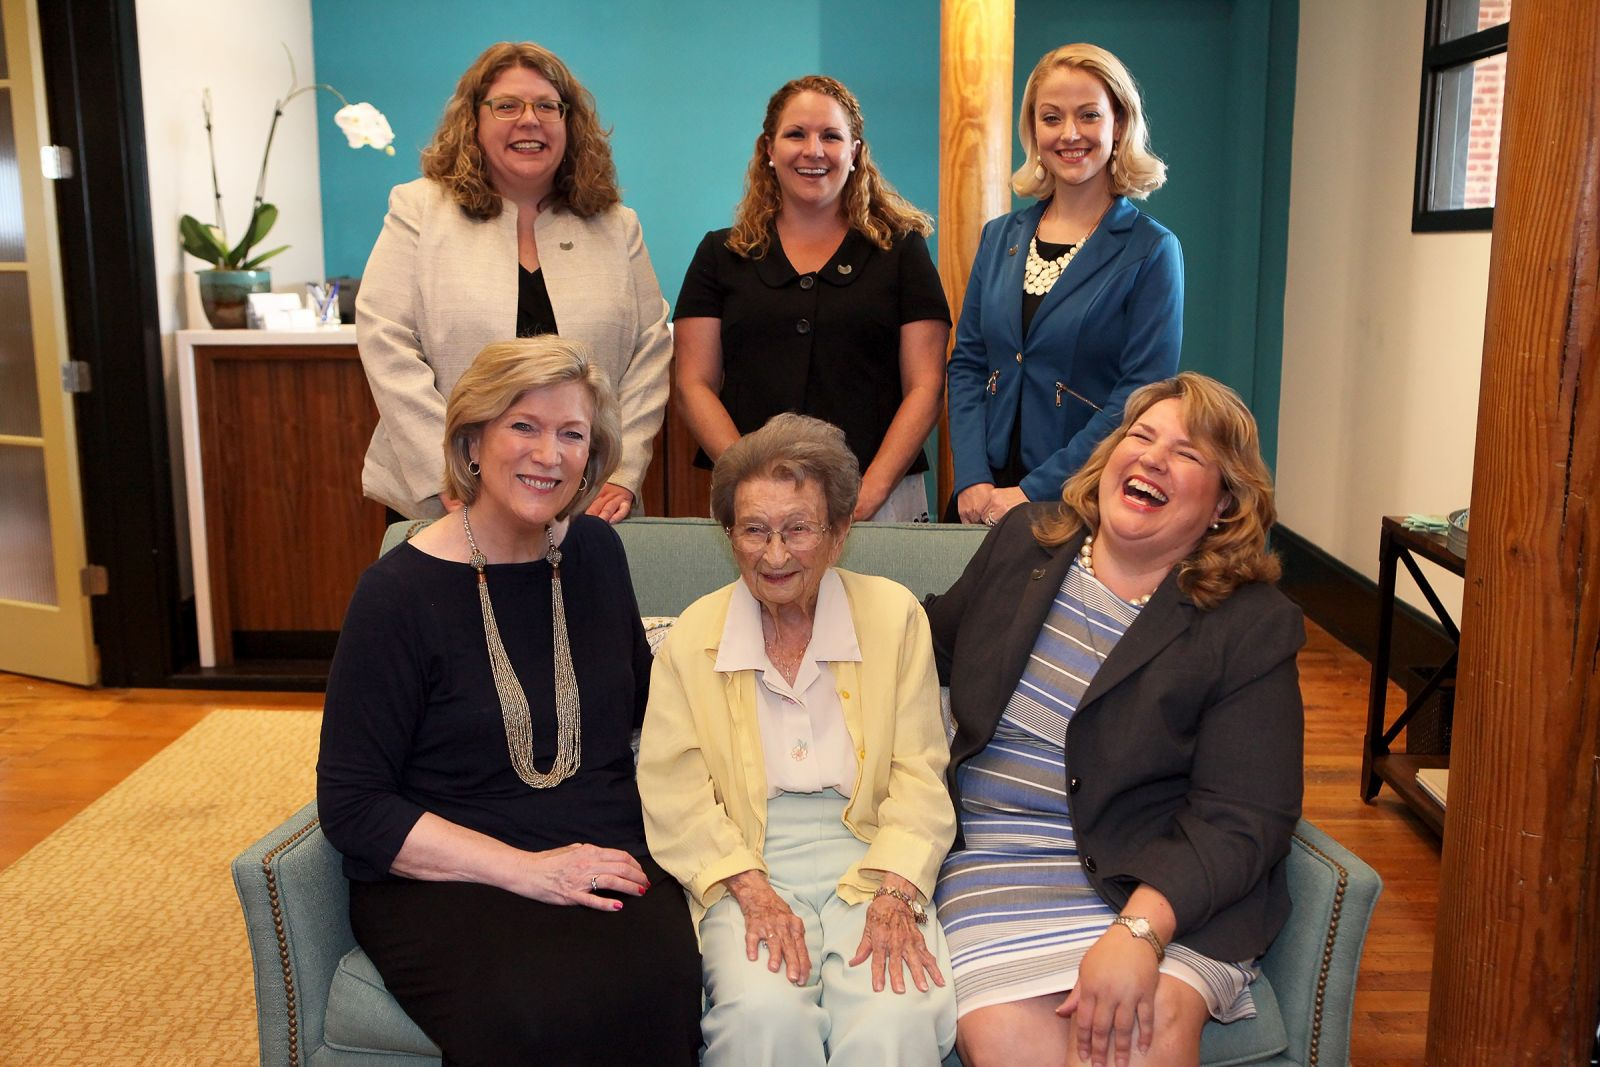 "Sarah Leverette (seated, center) visits the Vista law firm of Burnette Shutt & McDaniel P.A. Also pictured are Malissa Burnette (seated, left), Nekki Shutt (seated, right), Kathleen McDaniel (standing, from left), Janet Rhodes and Jacqueline ""Jax"" Pavlicek. (Photo/Courtesy of Molly Harrell Photography)"